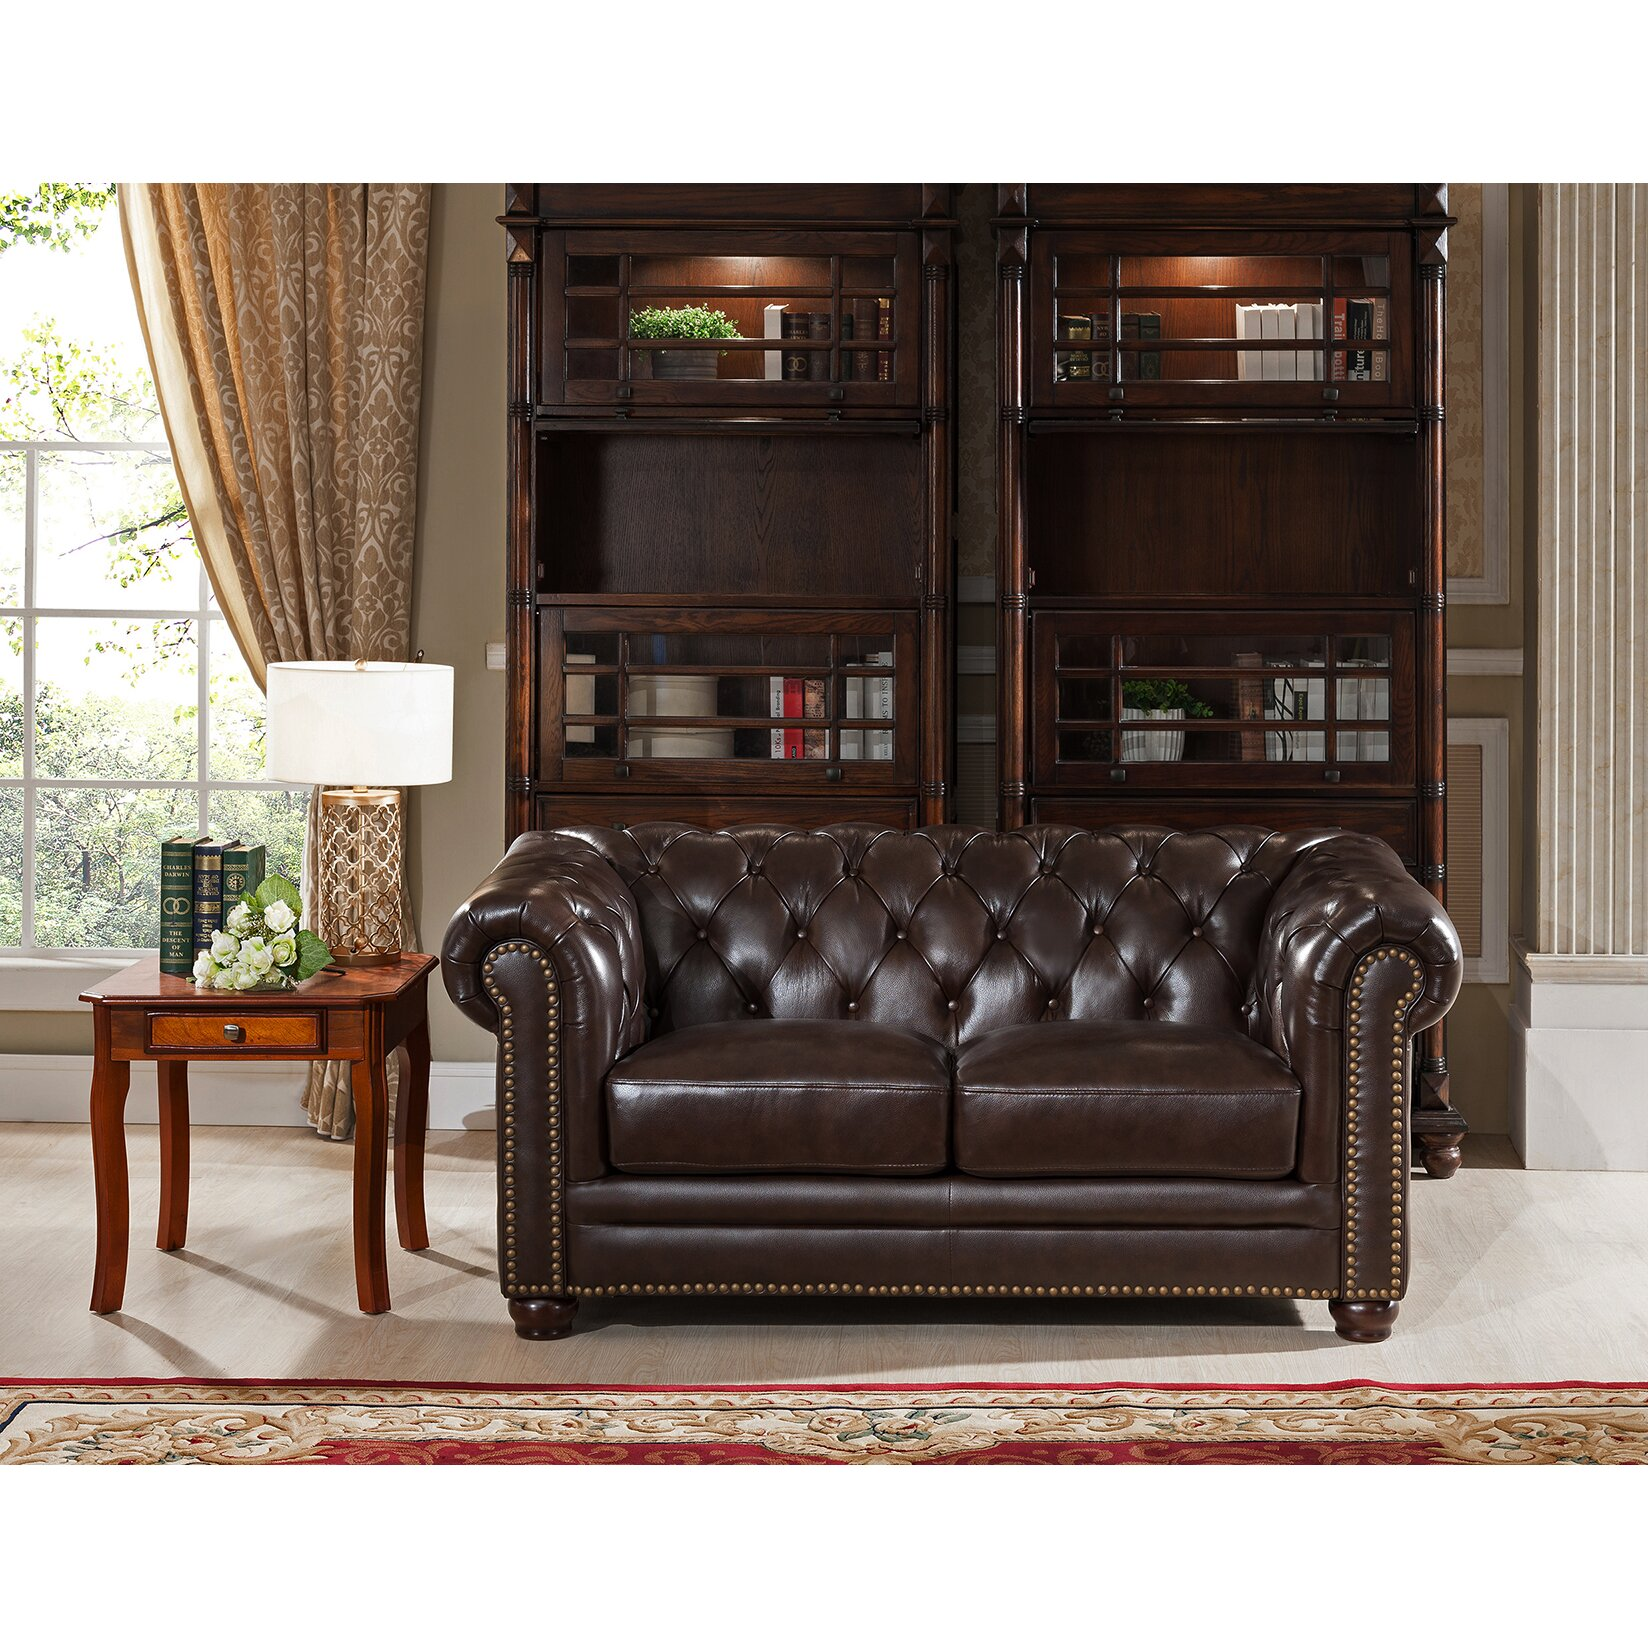 Amax kensington top grain leather chesterfield sofa and loveseat set wayfair Leather chesterfield loveseat